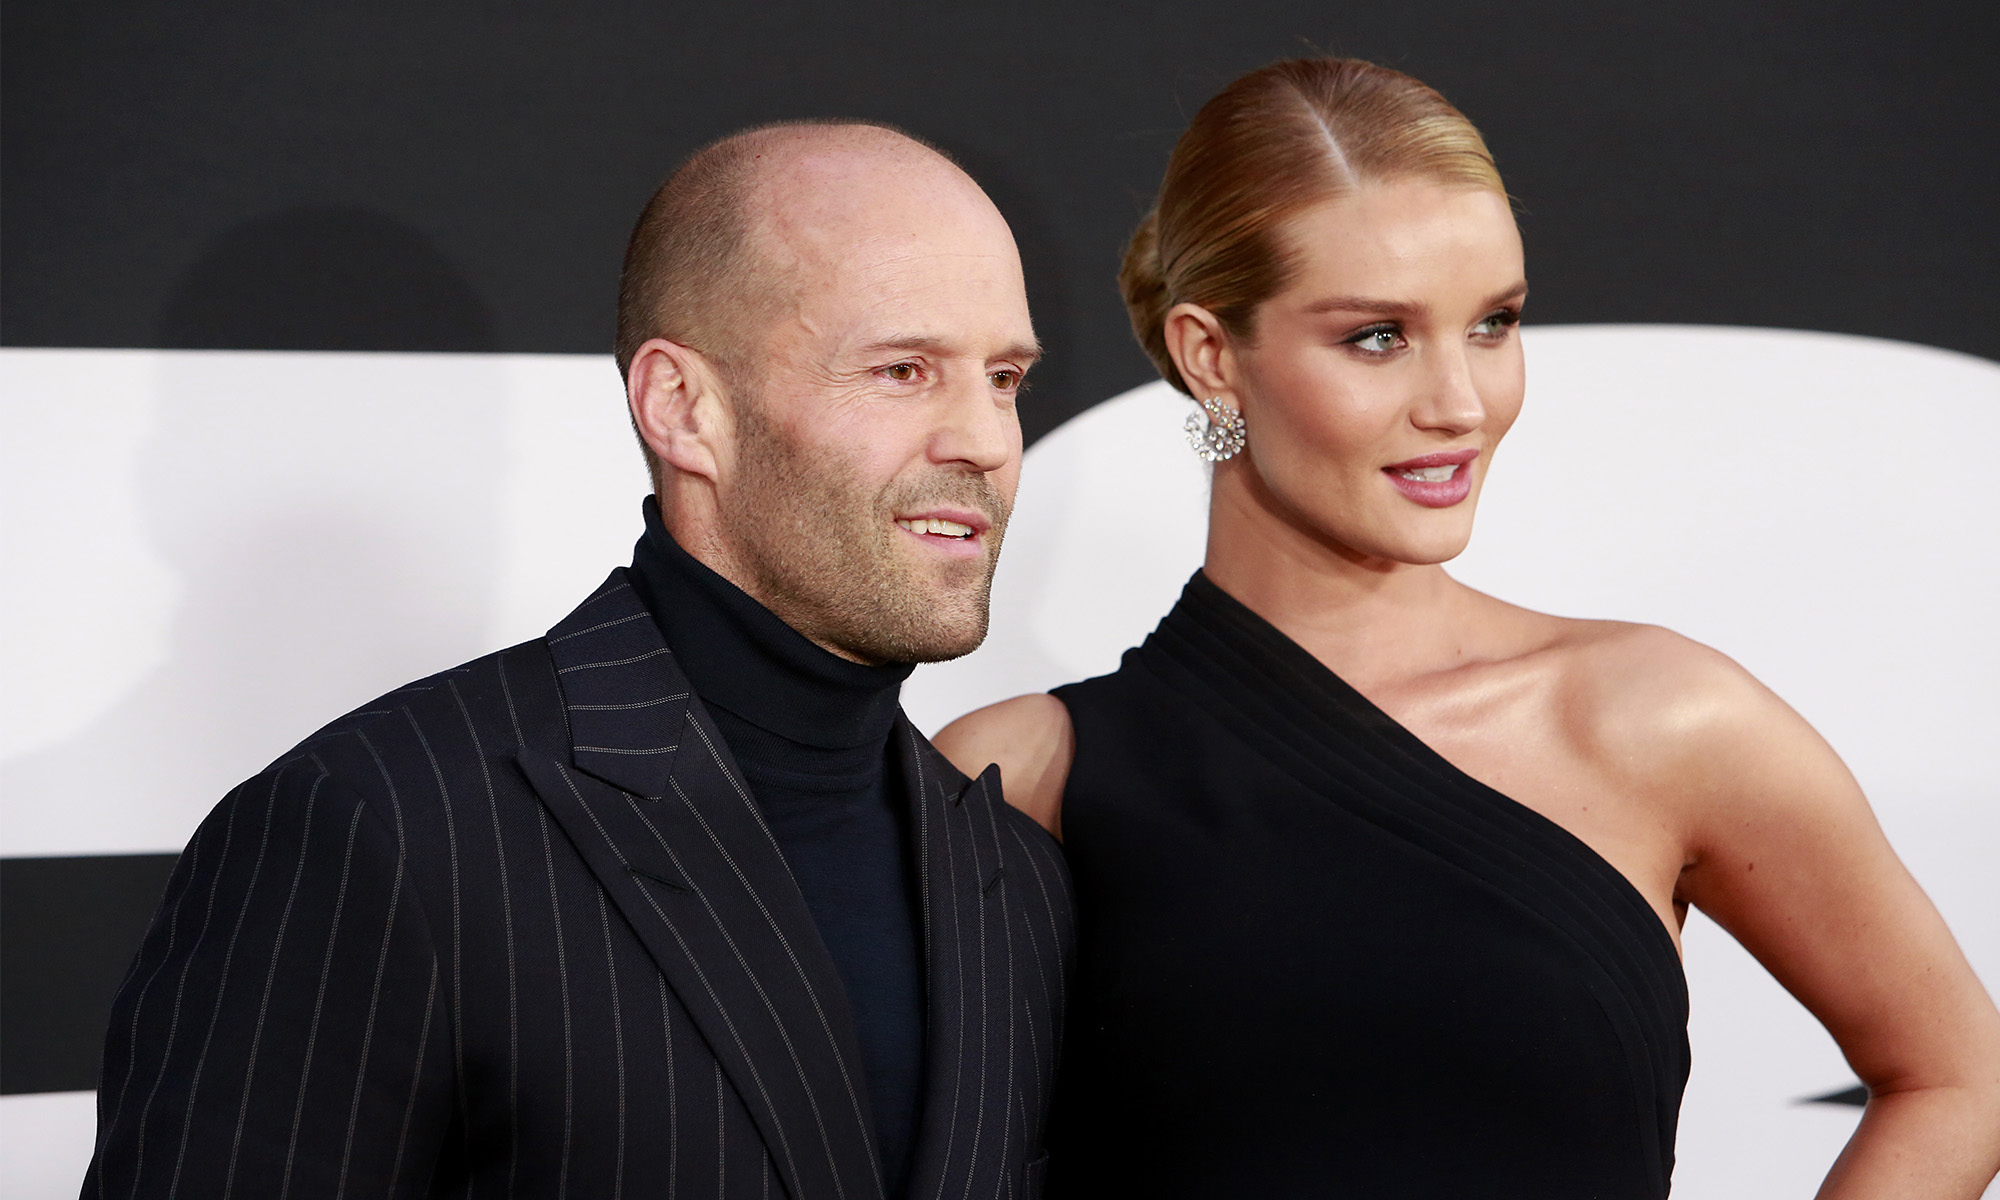 Apparently bald headed men are more attractive, successful ...